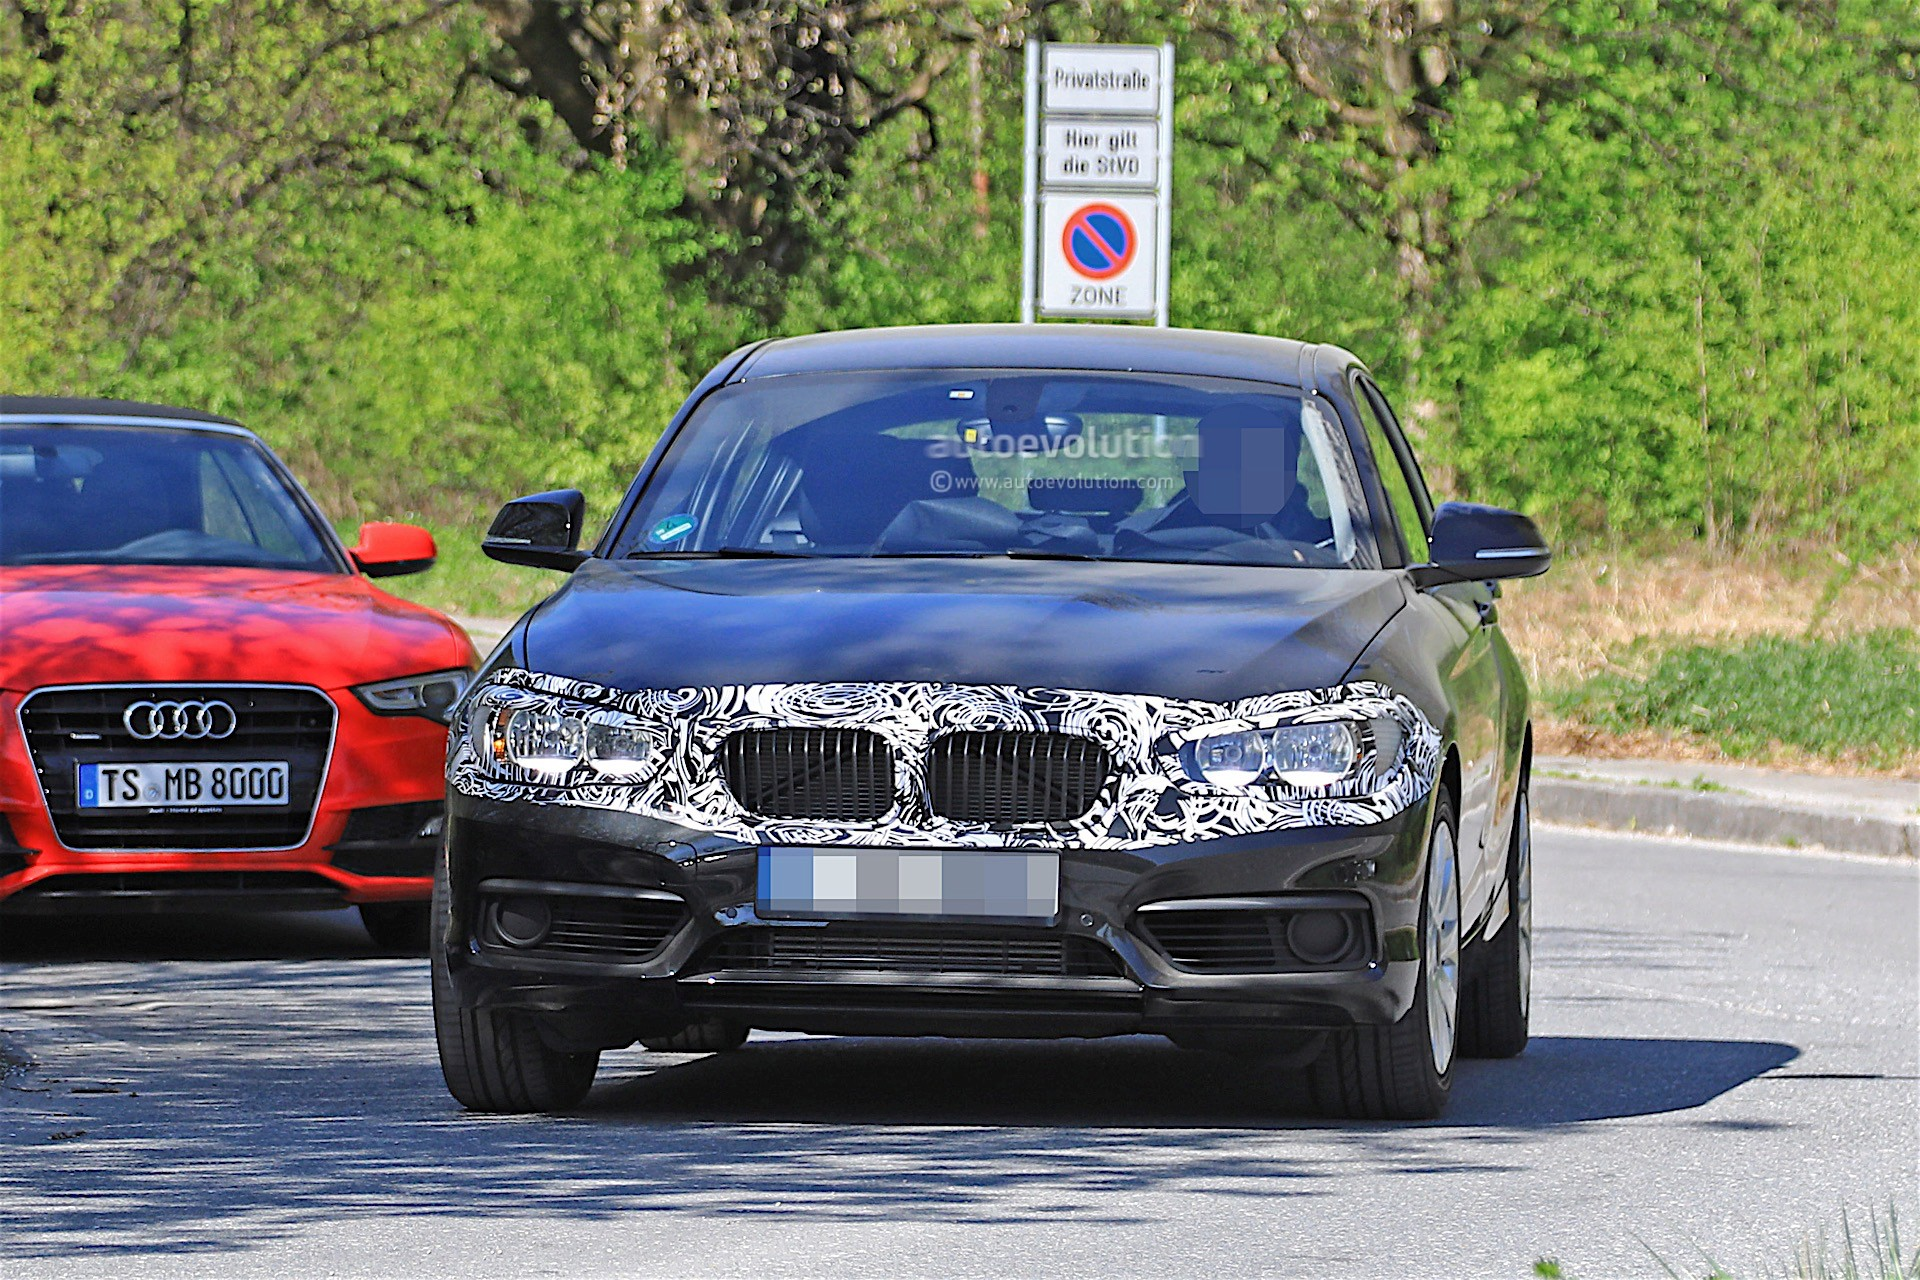 2018 BMW 1 Series Facelift Spied With Less Camouflage In